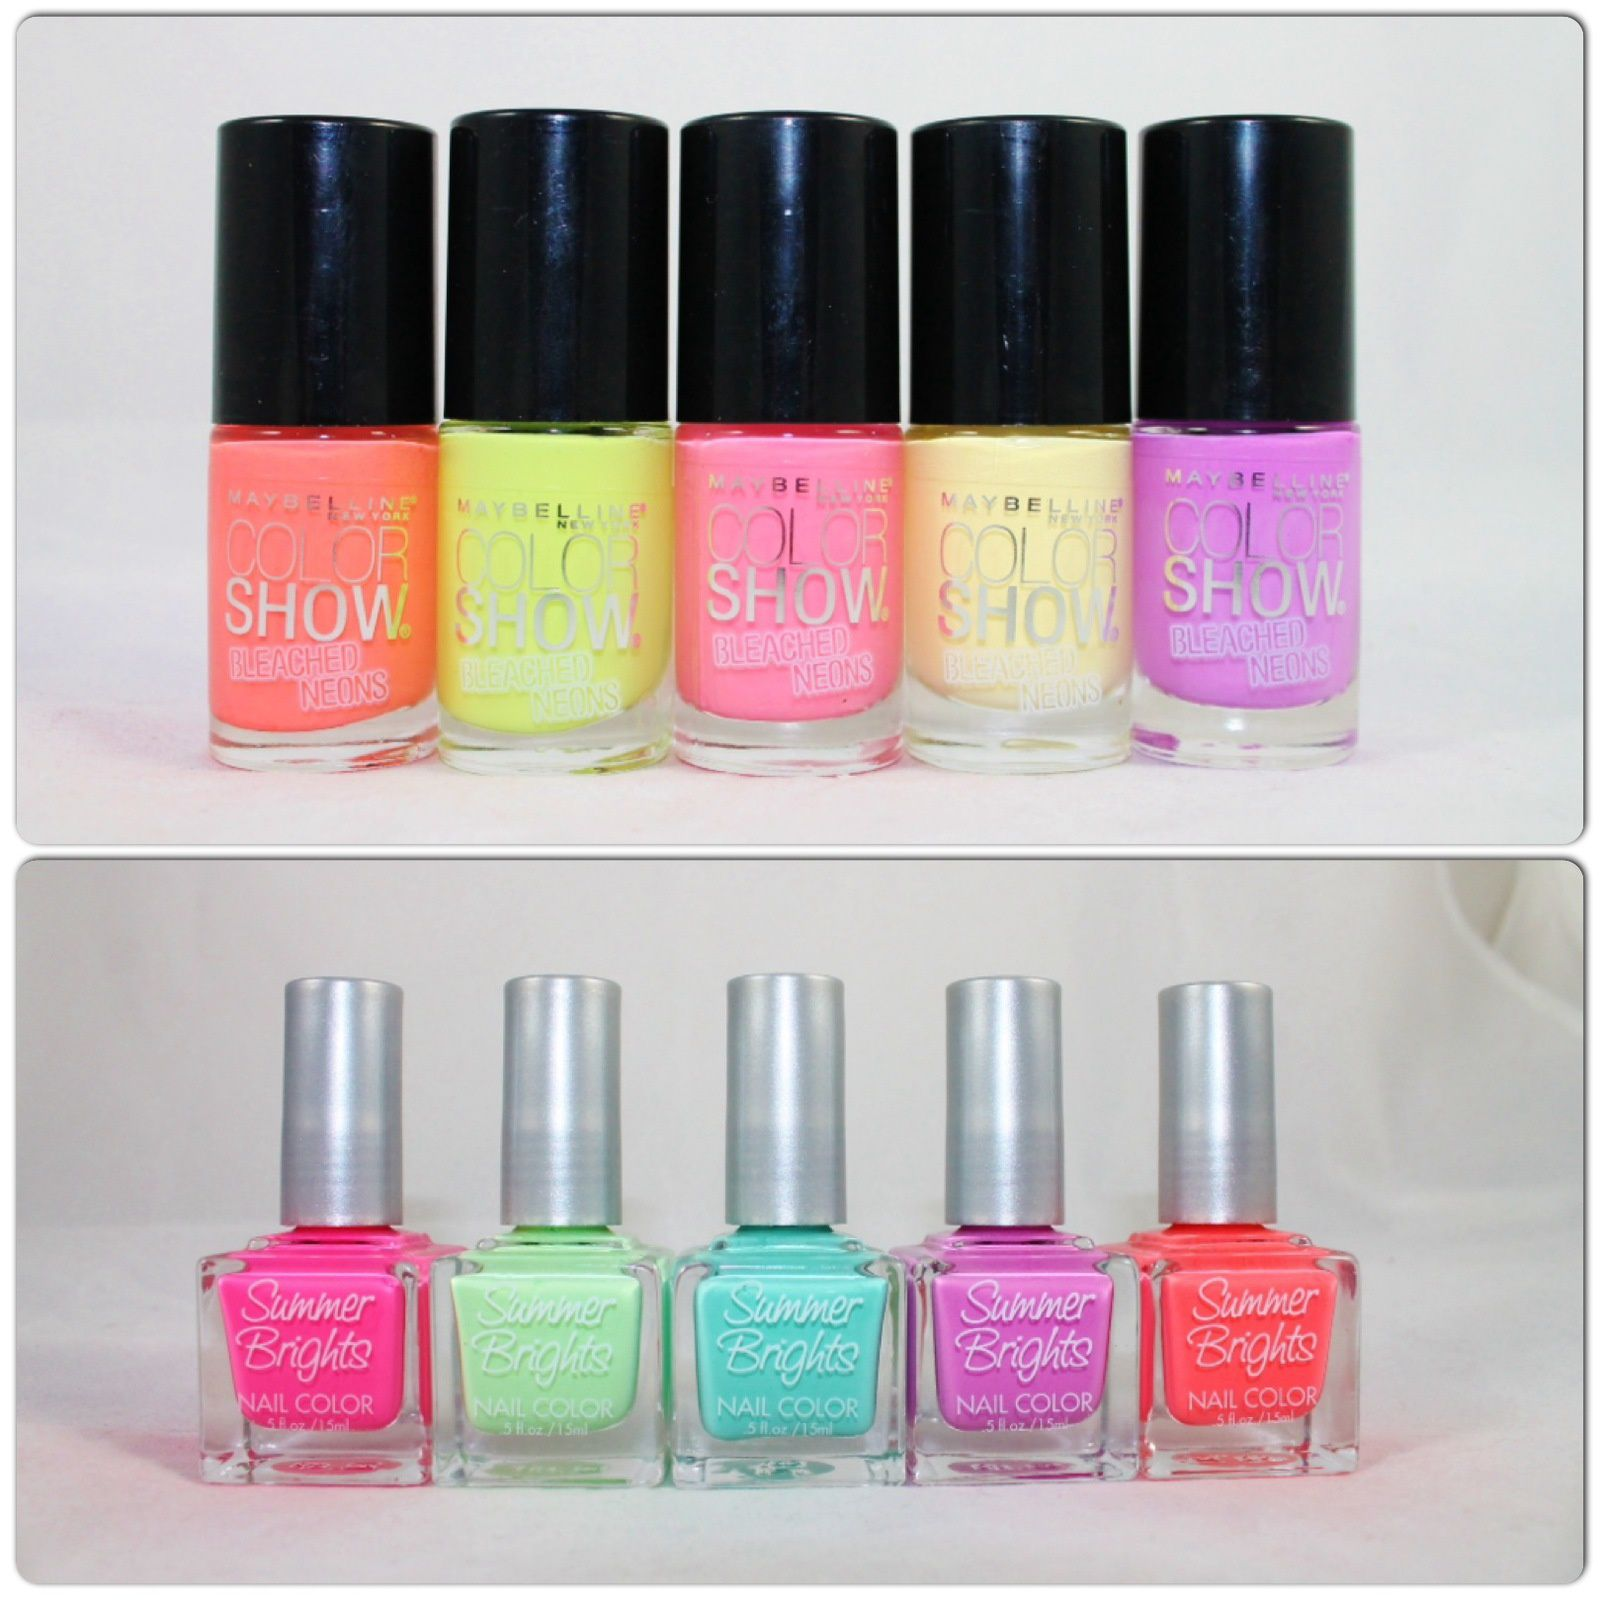 Maybelline Bleached Neons (Coral Heat, Lime Accent, Pink Punch, Citrus Collide & Ultra Violet) Summer Bright Nail Color (Pink, Green, Turquoise, Violet & Coral)